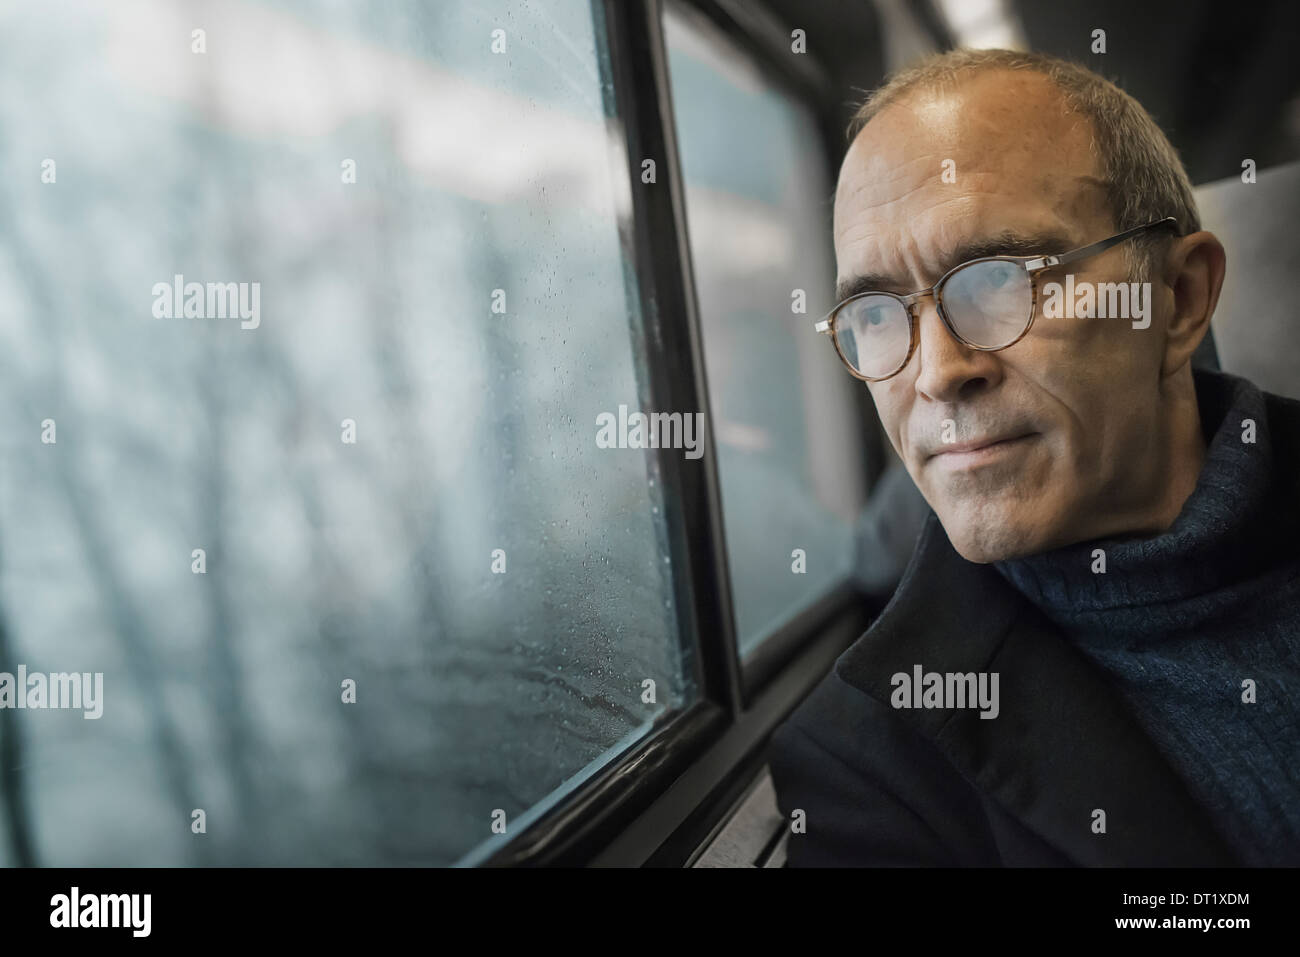 A mature man sitting in a window seat on a train journey looking out into the distance - Stock Image